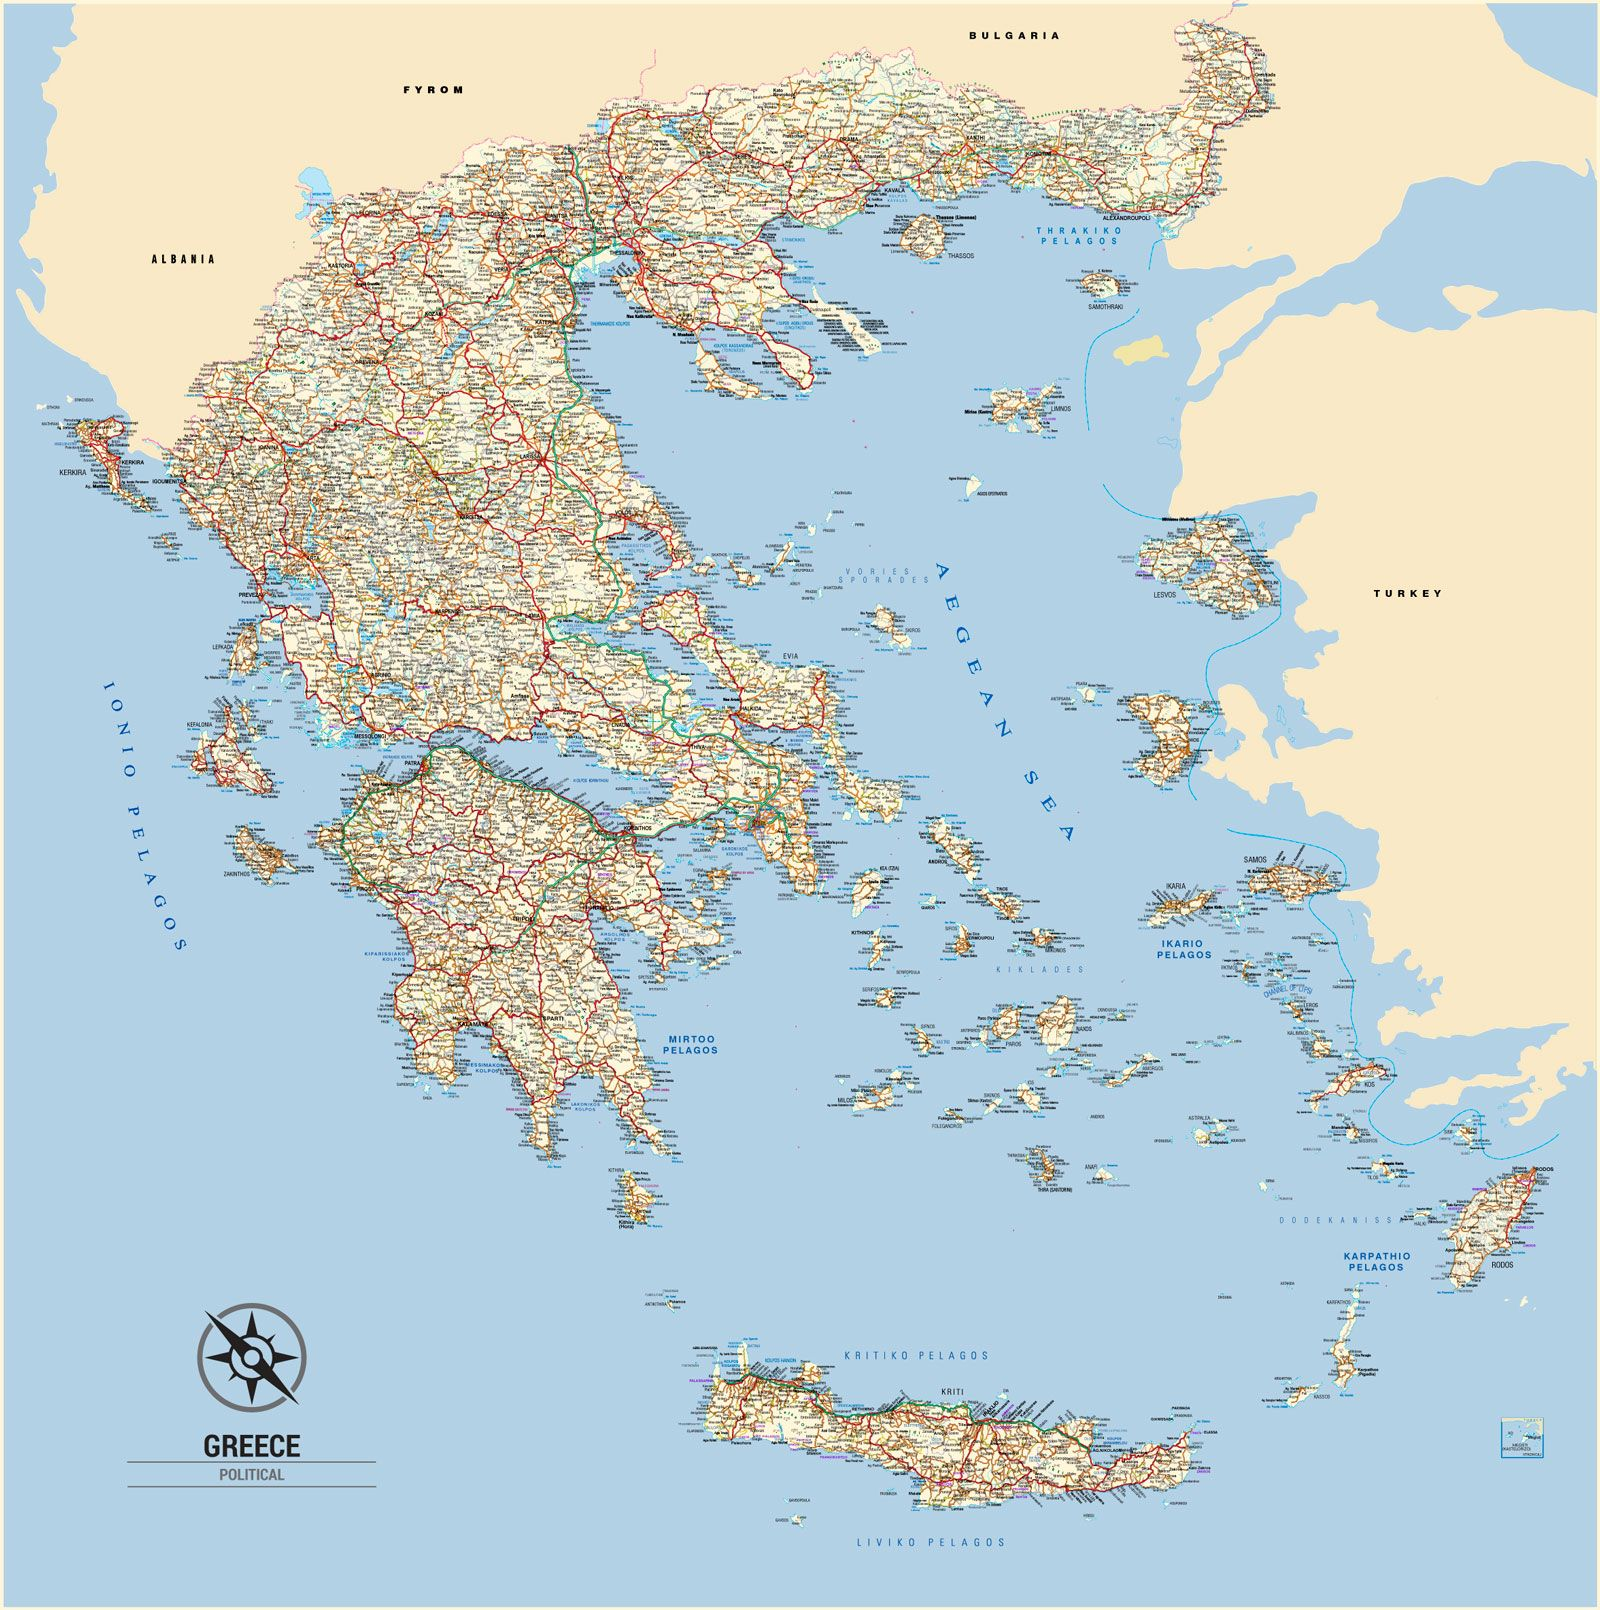 Greece Wall Map With Images Greece Map Wall Maps Map